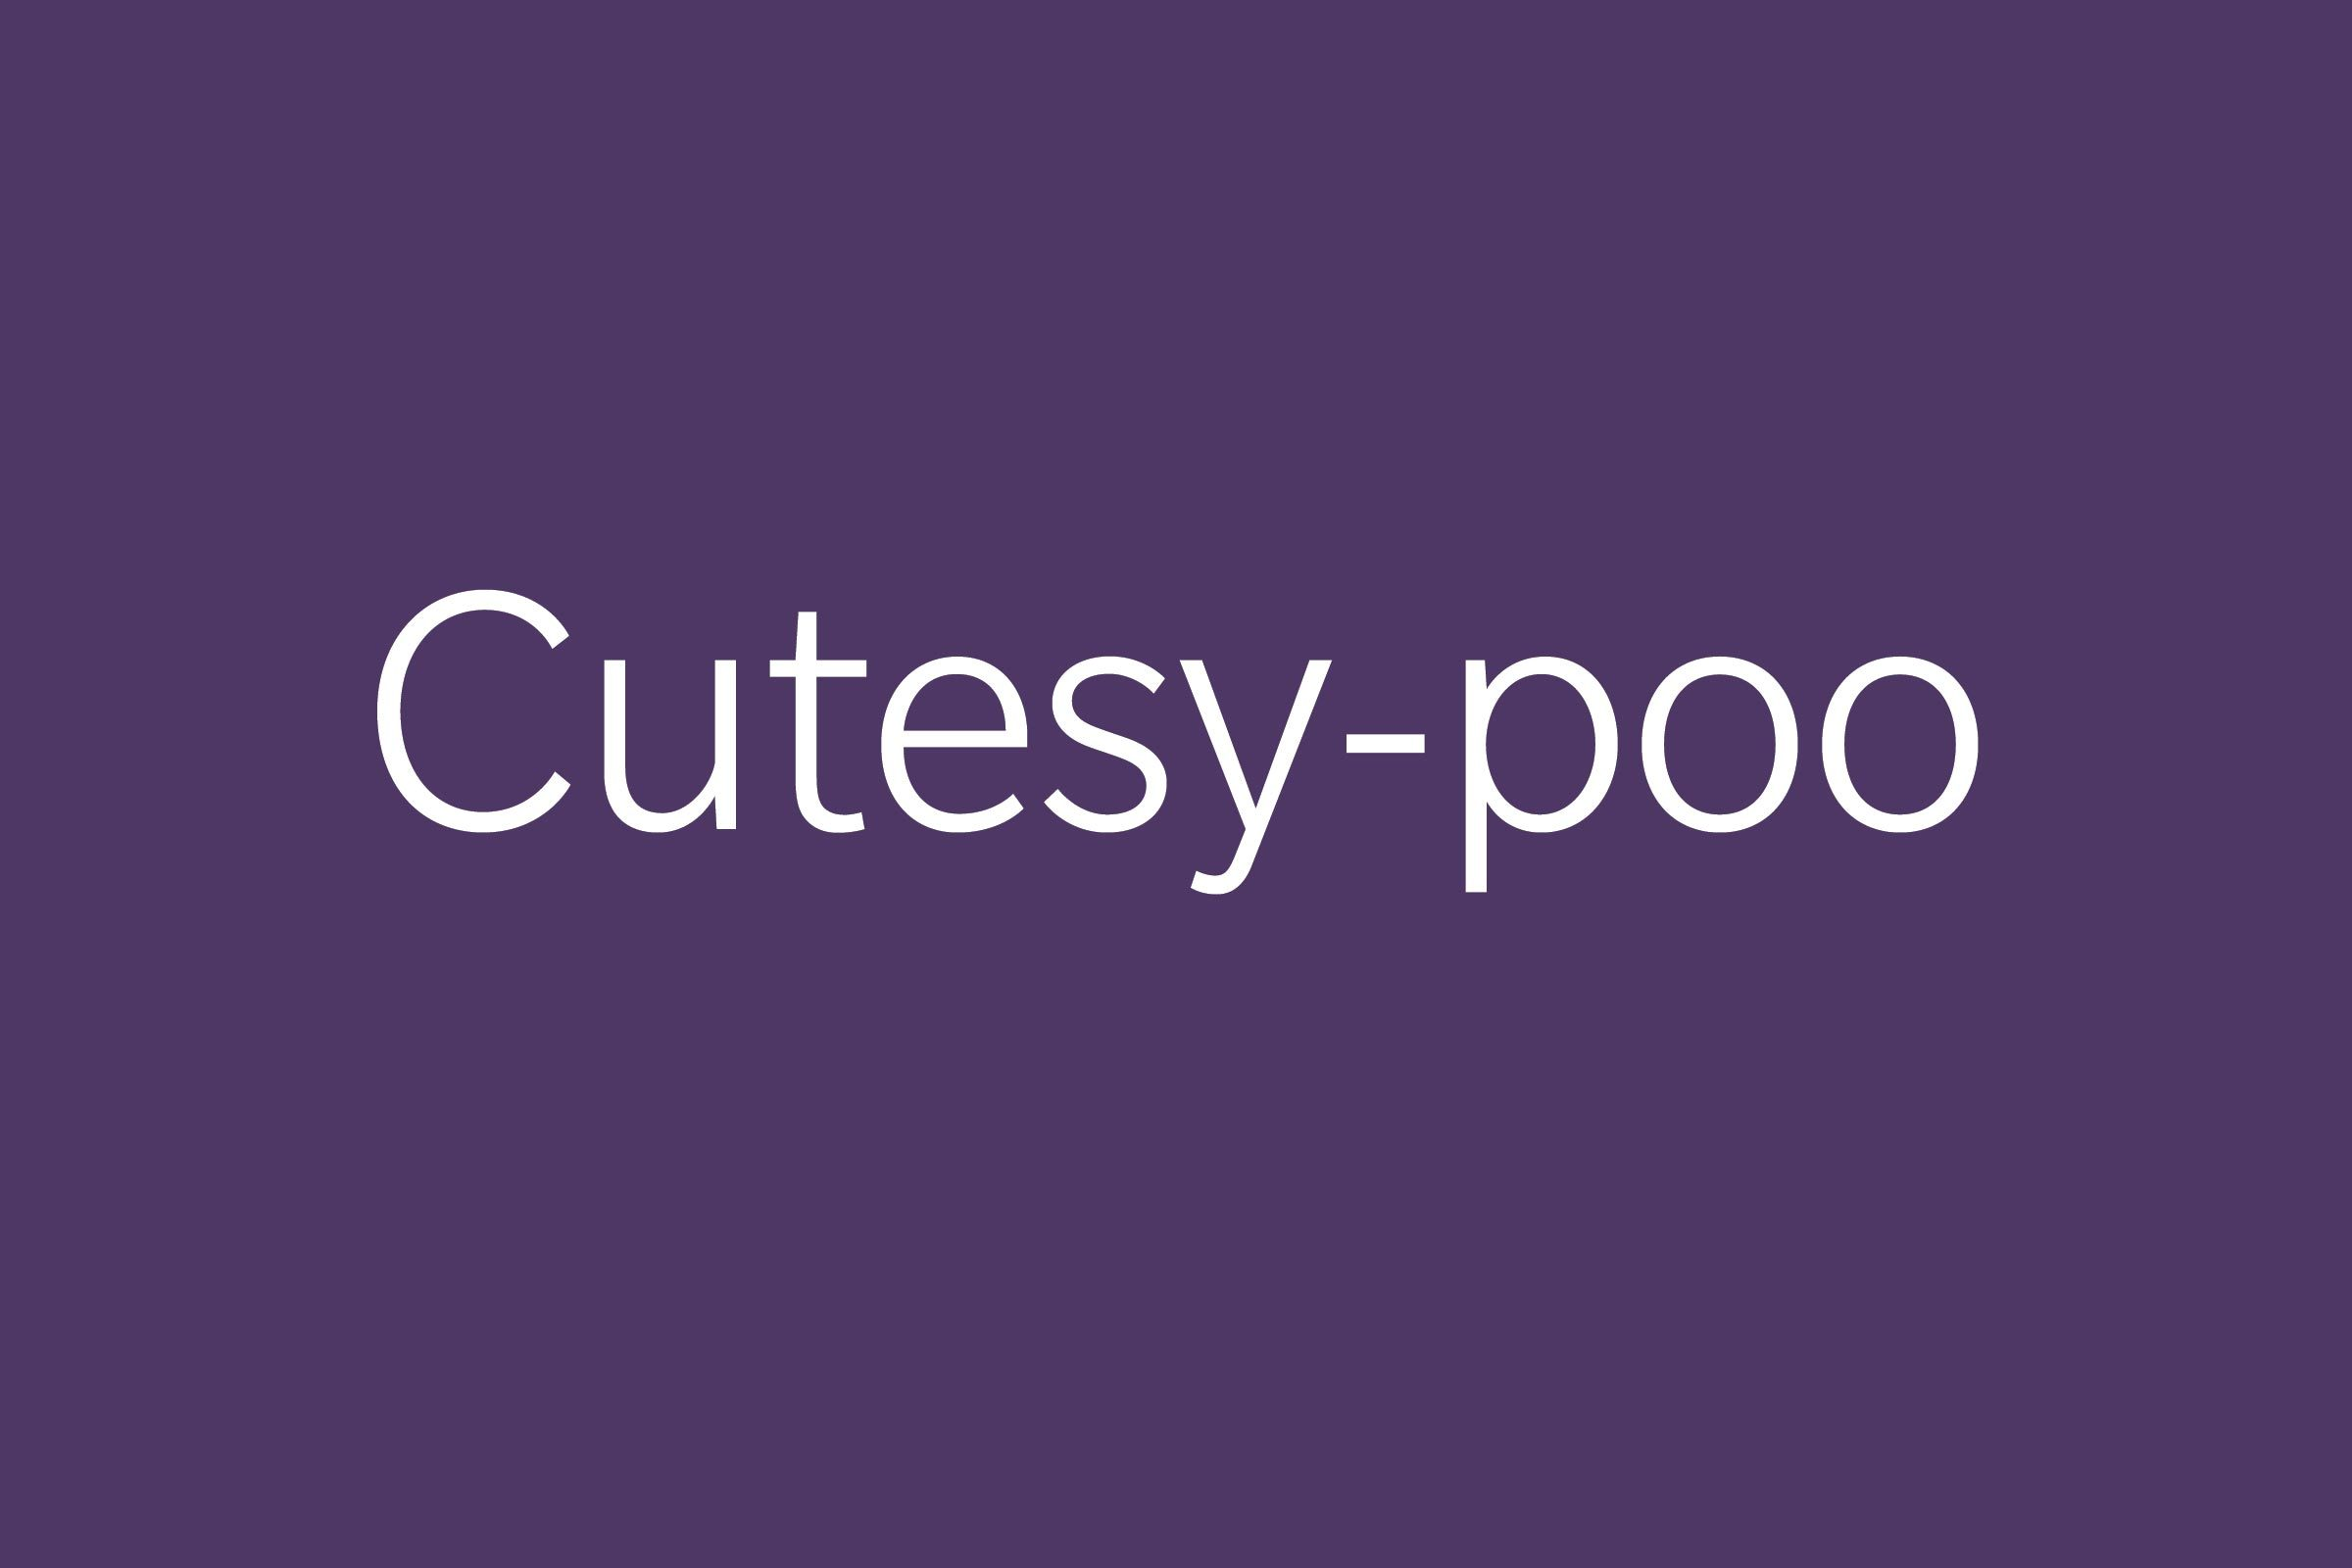 cutesy-poo funny word funny words to say